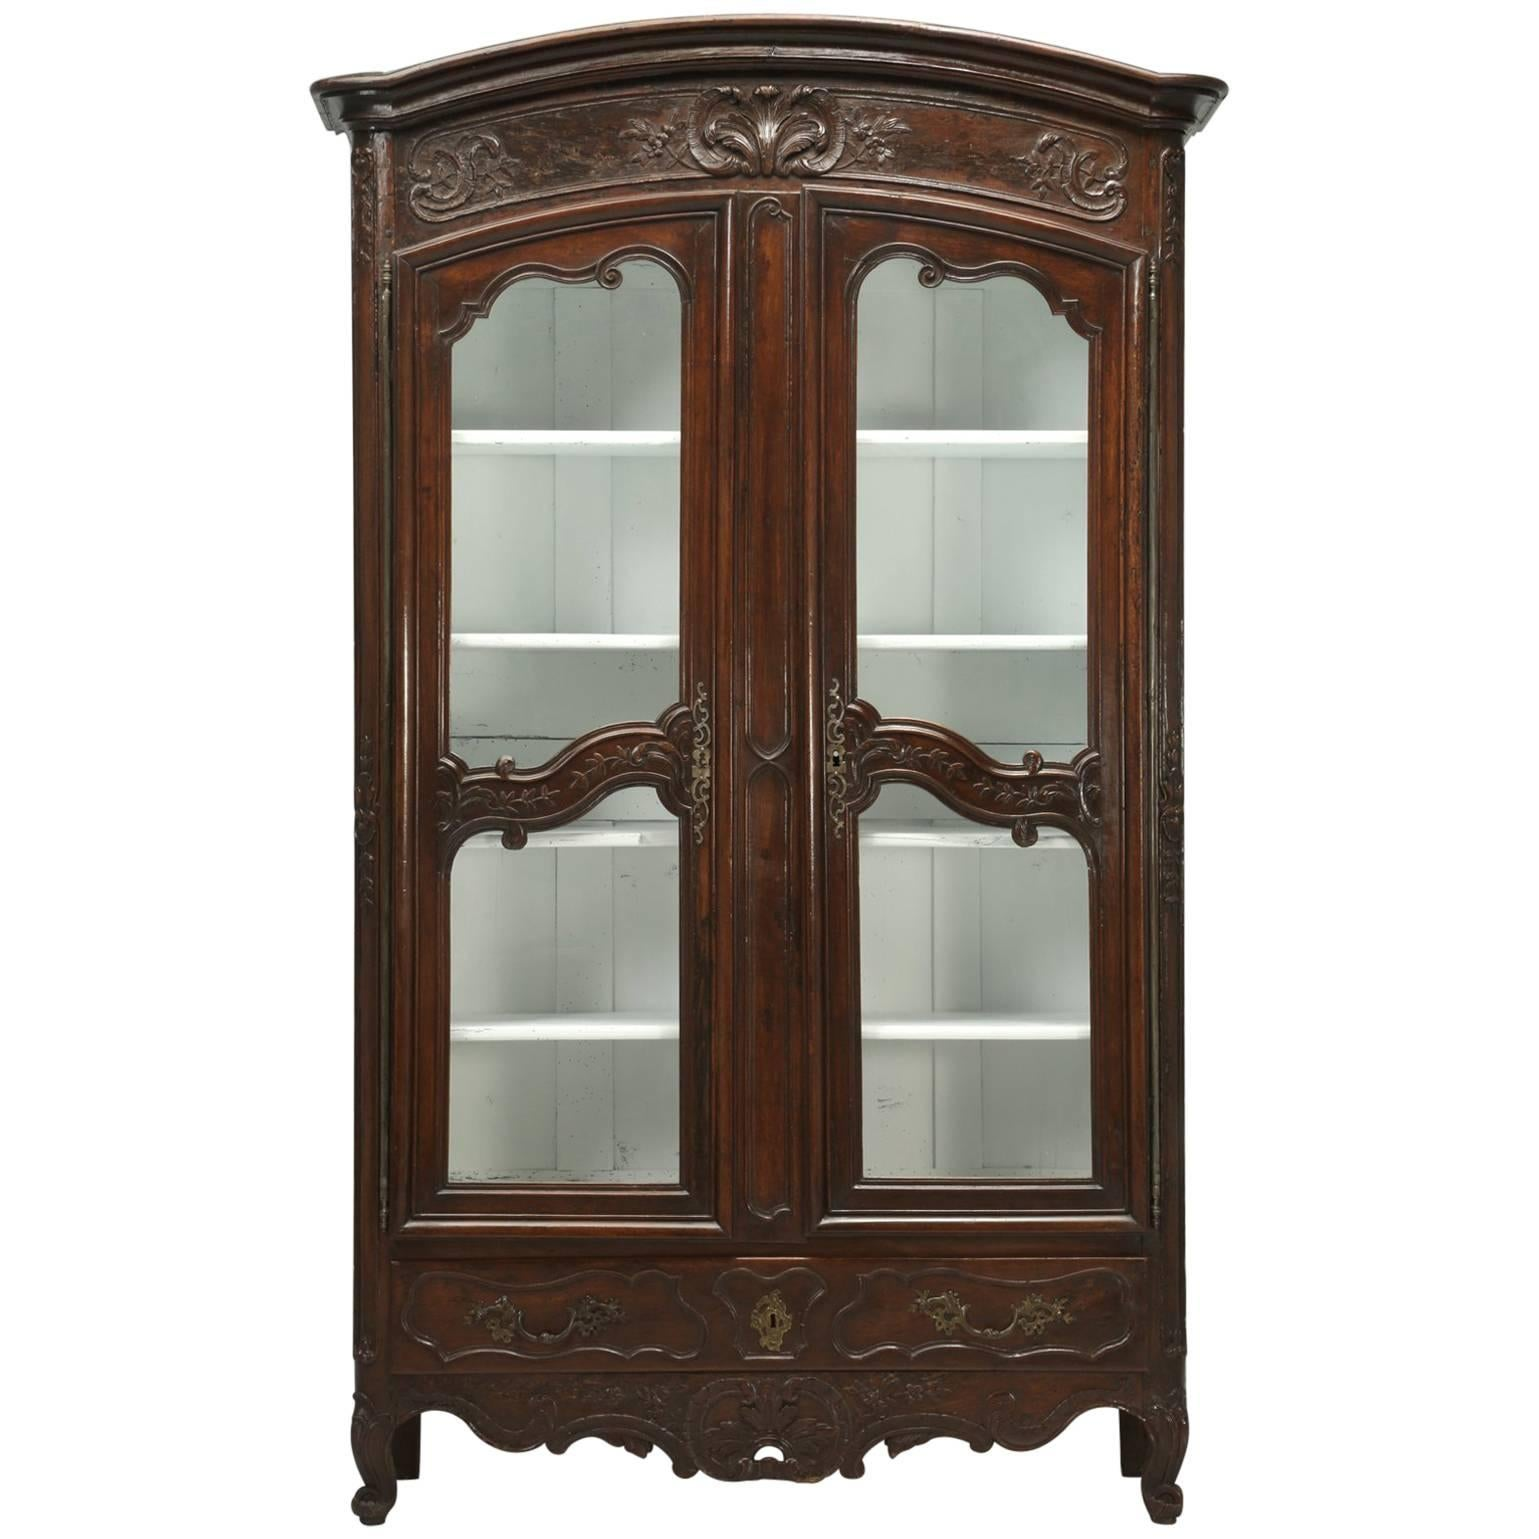 Antique and Vintage Wardrobes and Armoires - 1,456 For Sale at 1stdibs